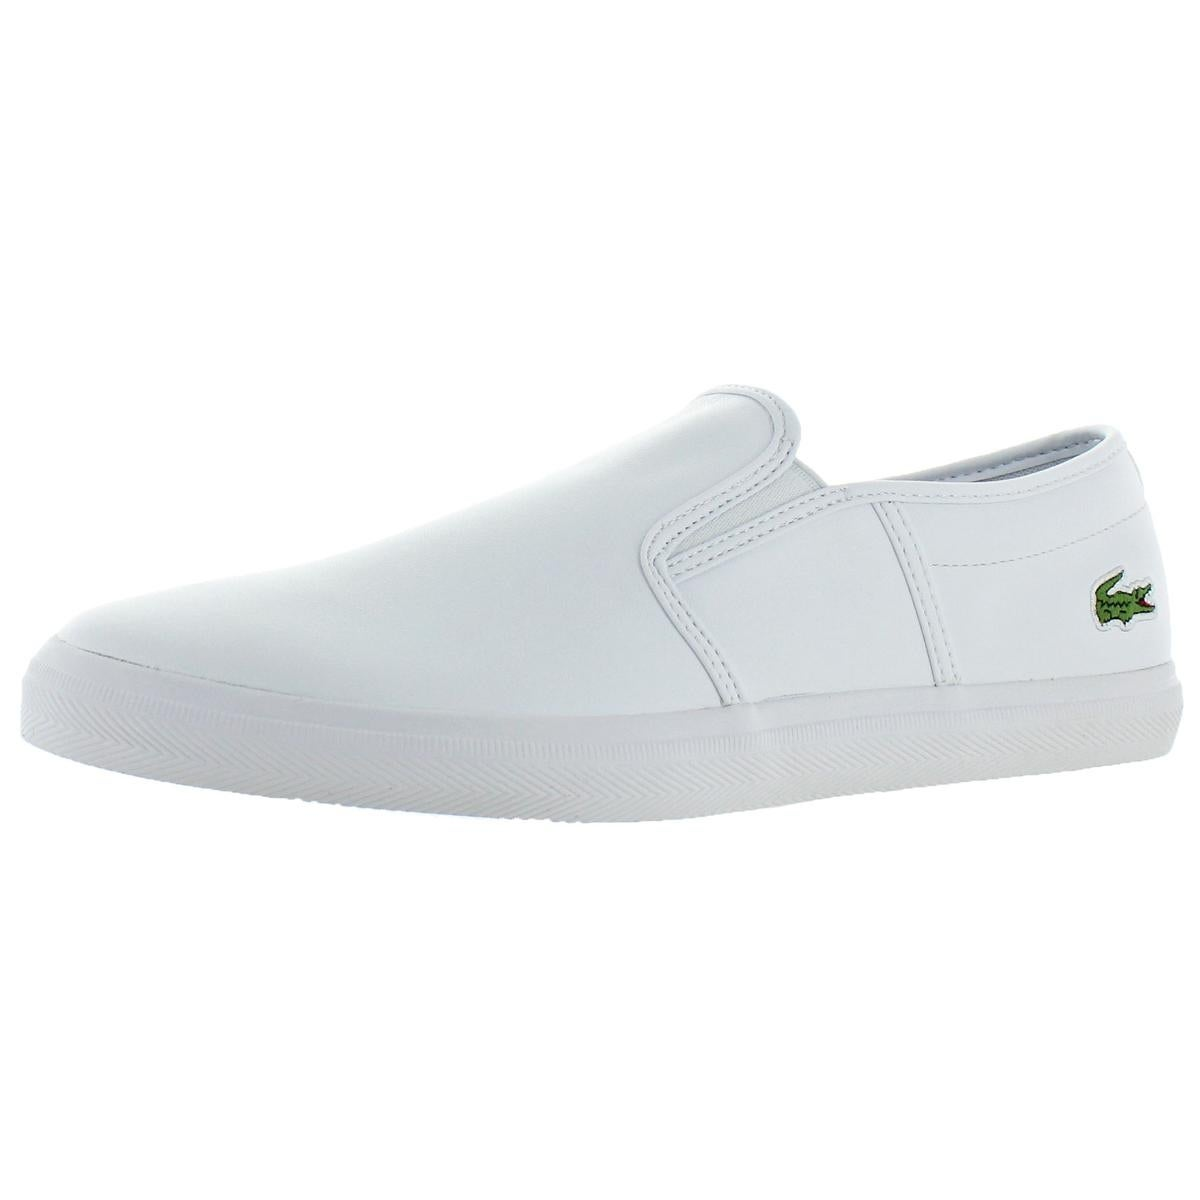 2ee30cc36302 Shop Lacoste Mens Tatalya Loafers Leather Slip-On - Free Shipping Today -  Overstock - 26459546